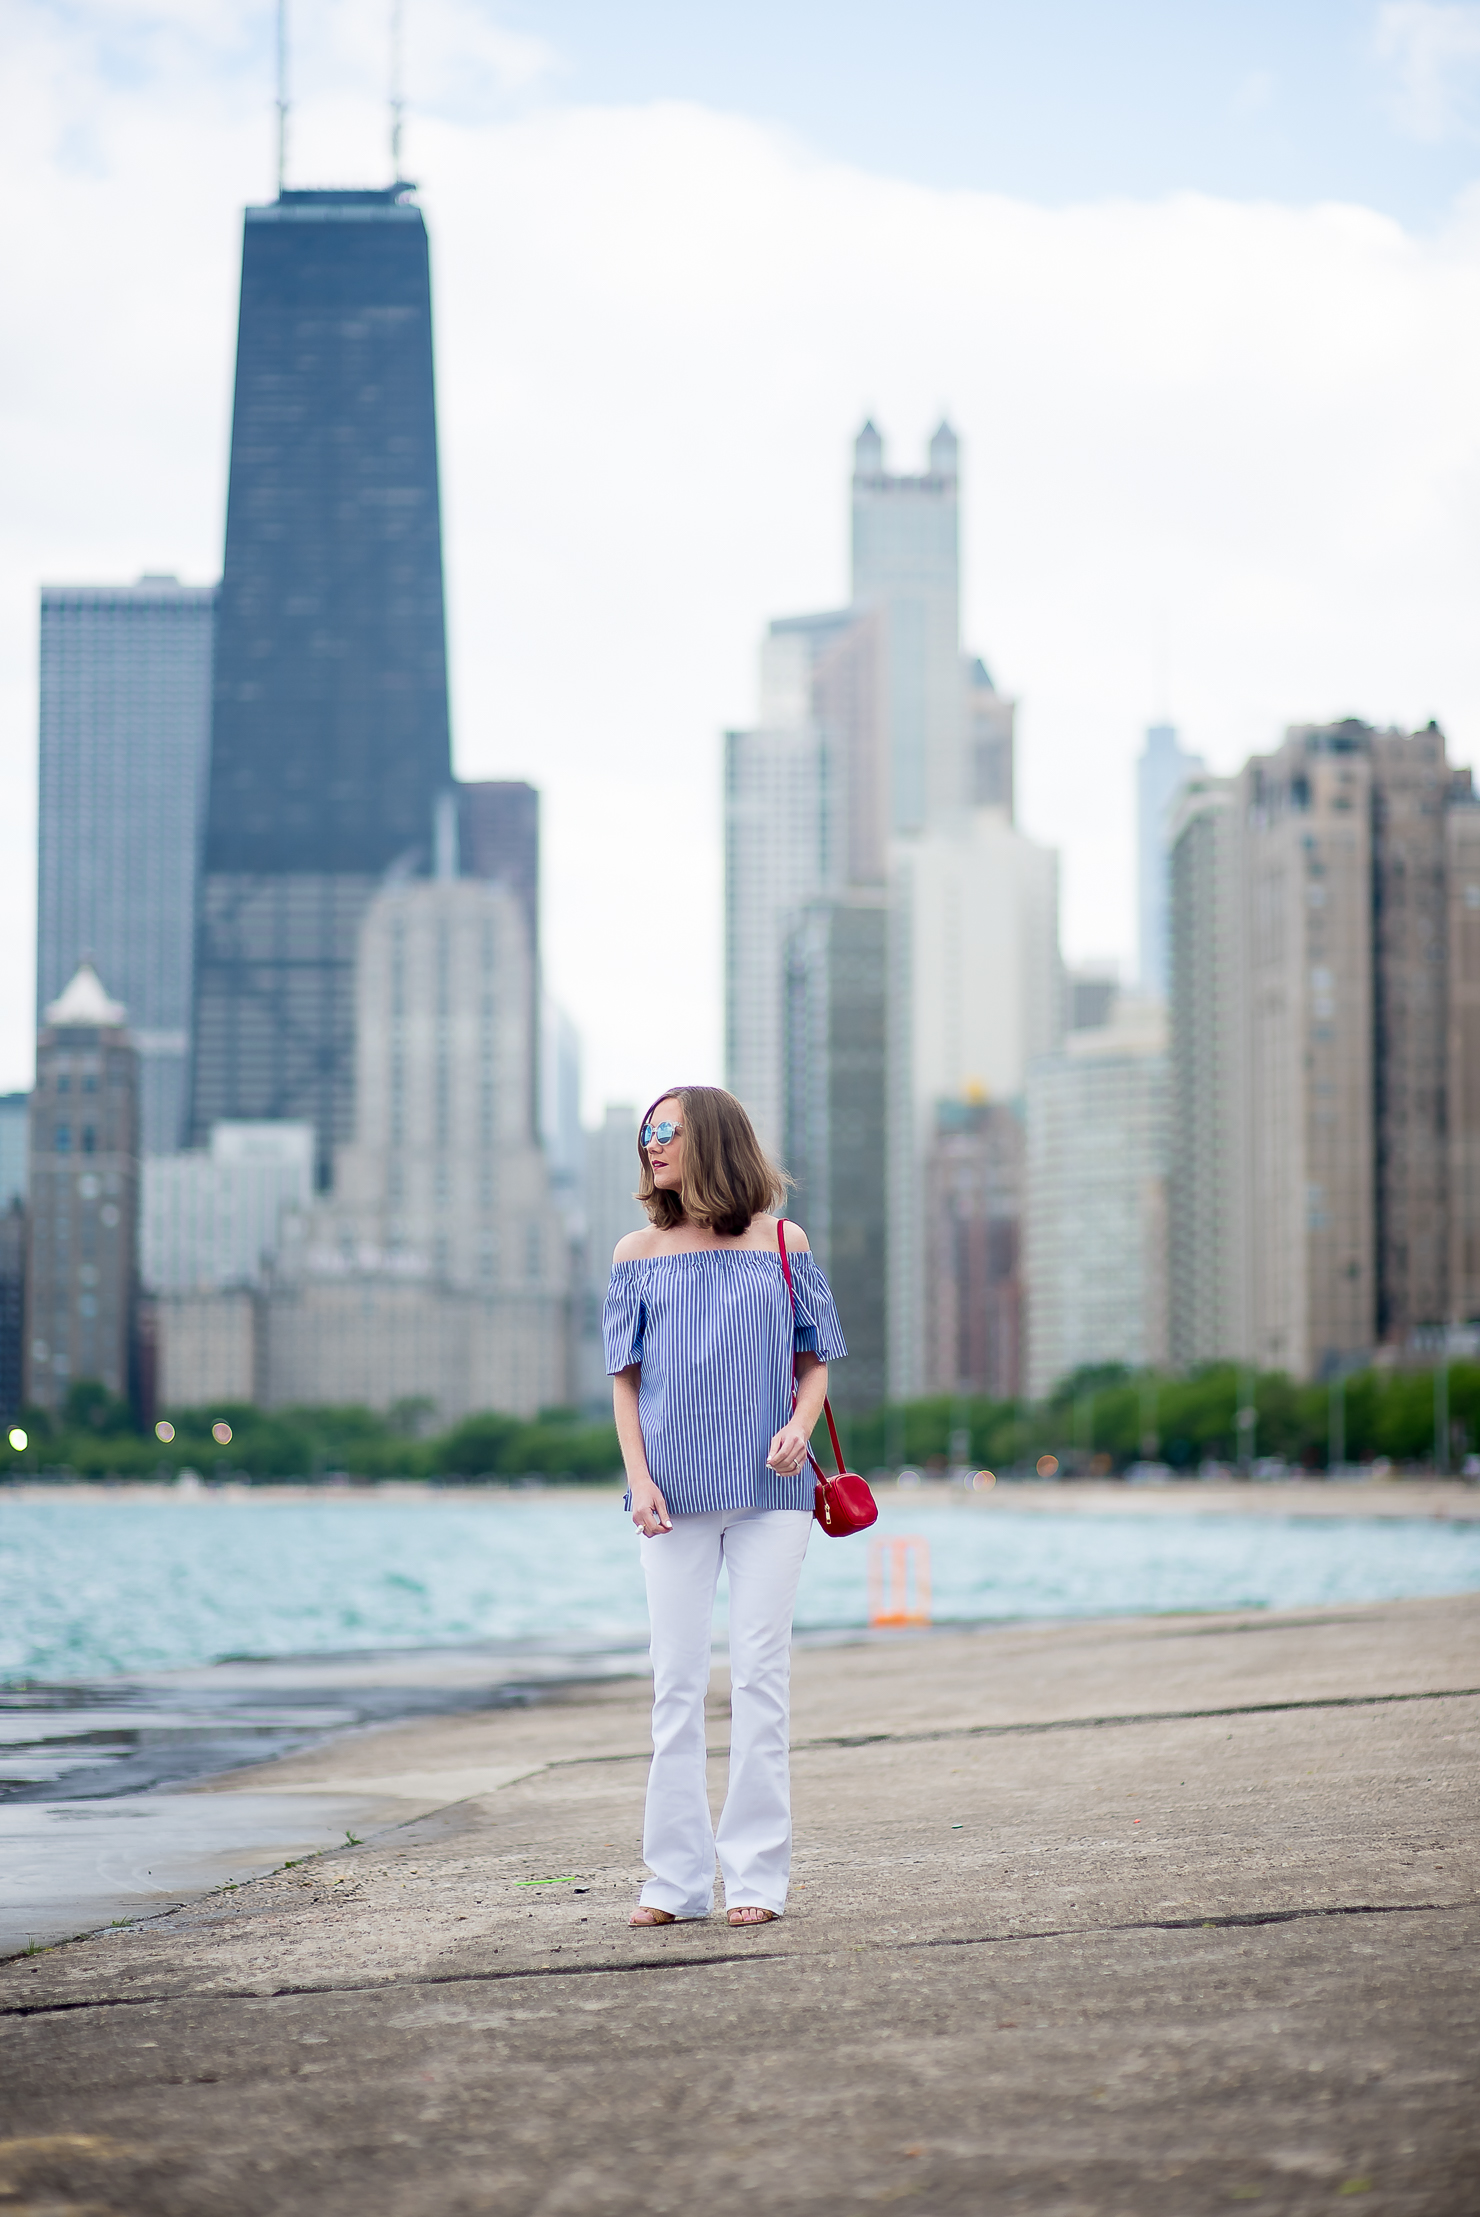 banana-republic-blue-striped-off-the-shoulder-top-white-flared-jeans-red-forever-21-crossbody-pouch-chicago-skyline-north-ave-beach